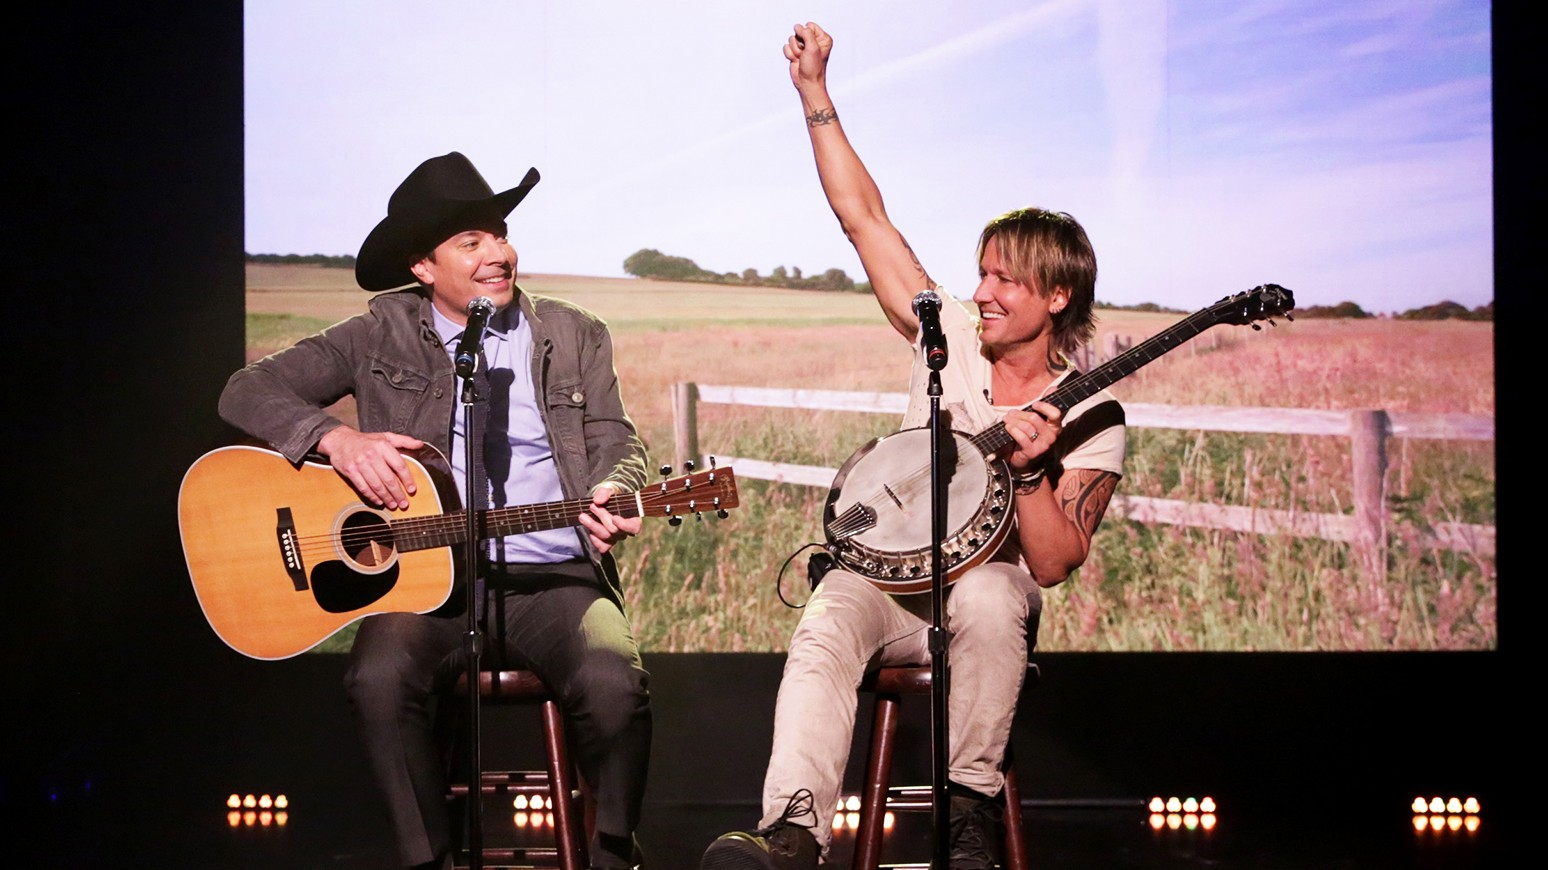 Jimmy Fallon, Keith Urban Play Country Songs Based On 'FMyLife' Web Posts